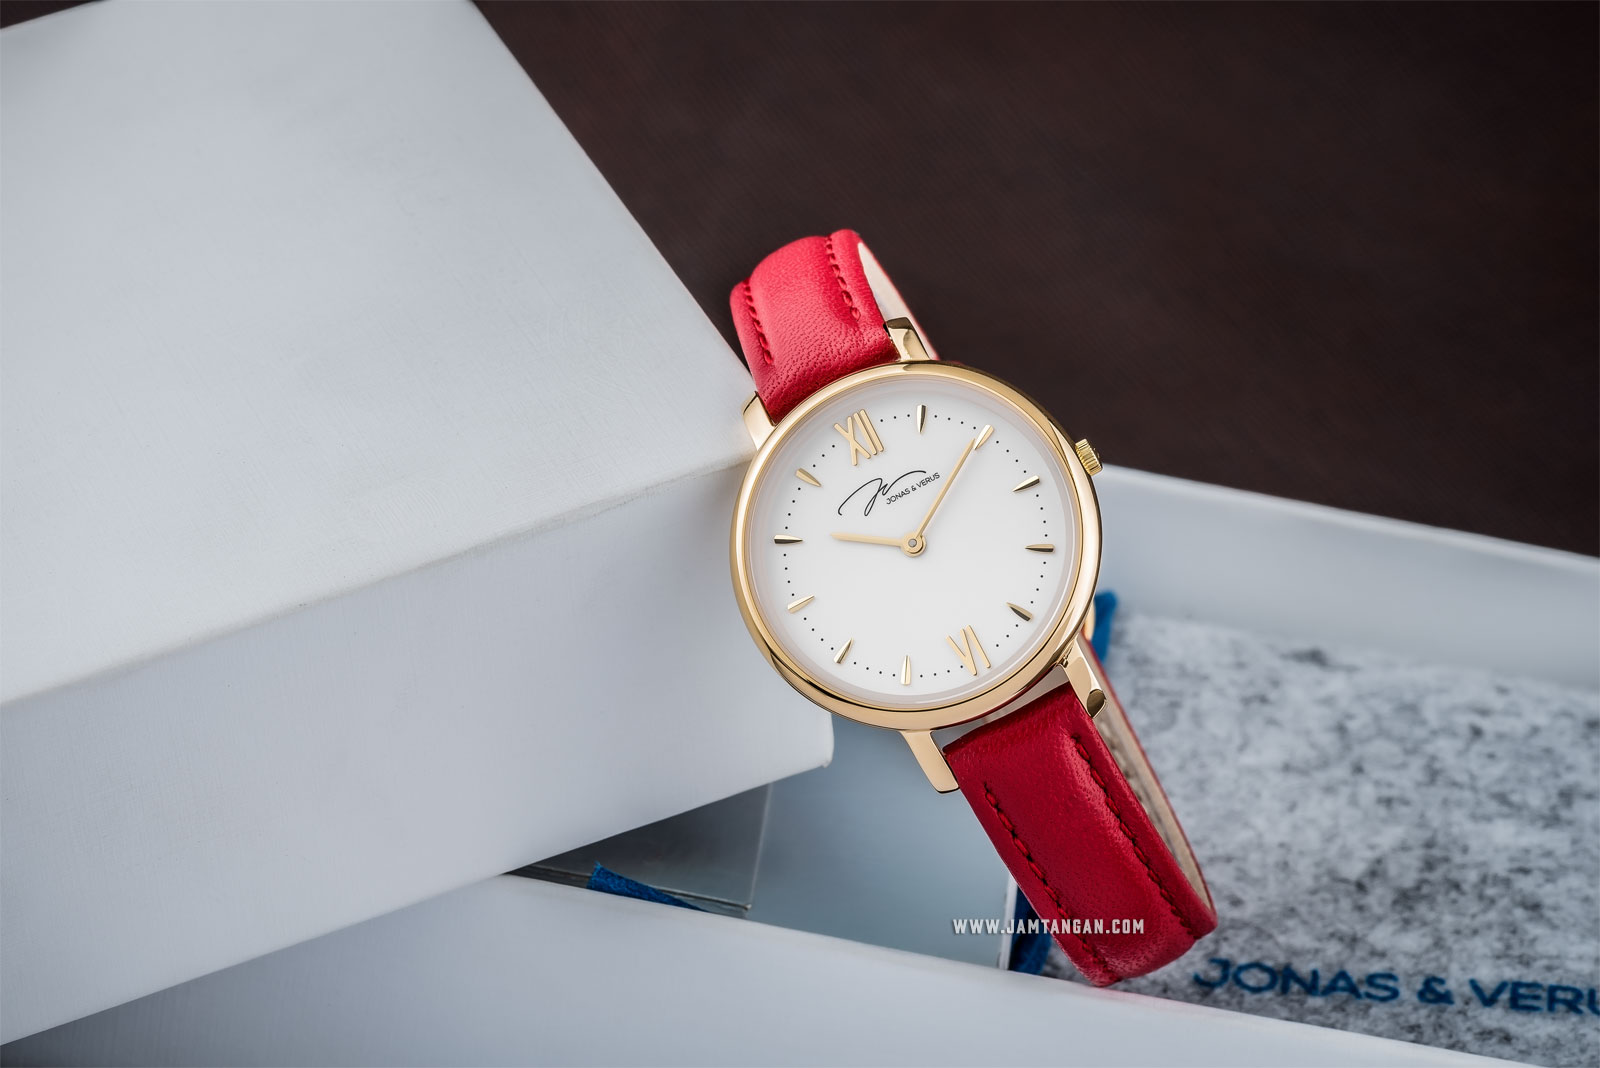 Jonas Verus X00752-Q3.GGWLR Ladies Quartz Watch White Dial Red Leather Strap Machtwatch